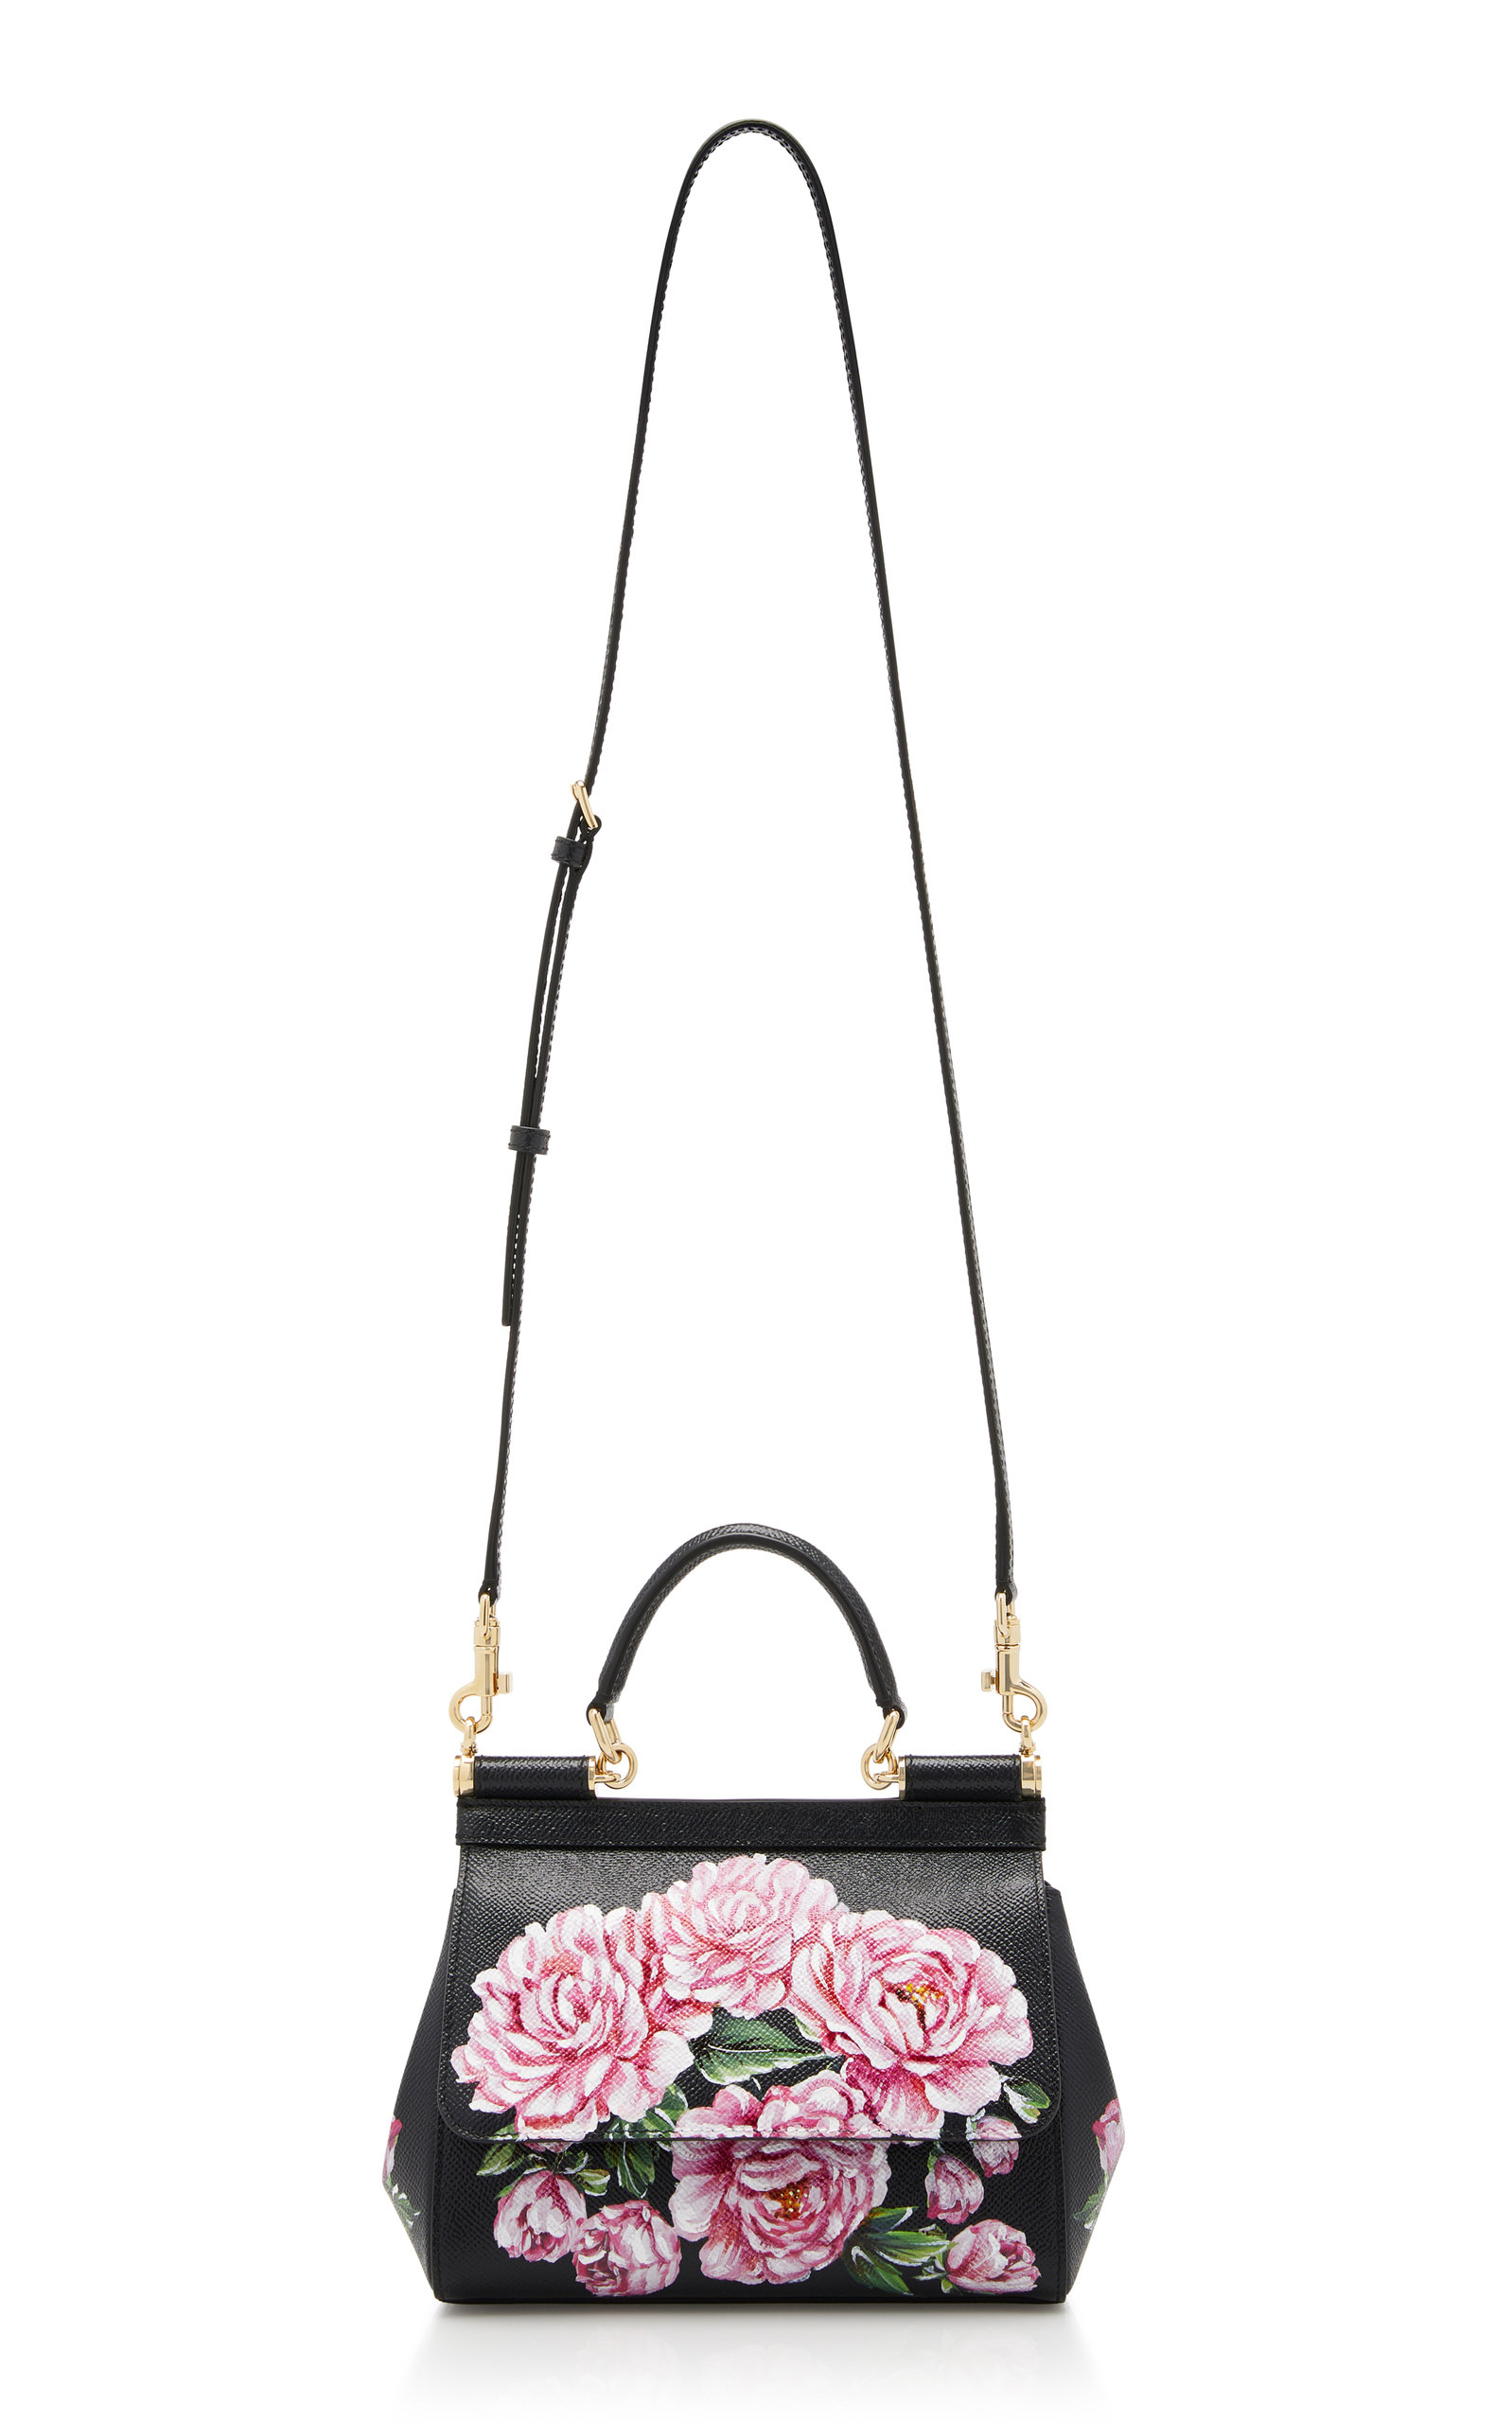 82c4d17d34 Dolce   GabbanaDauphine Sicily Hand-Painted Leather Bag. CLOSE. Loading